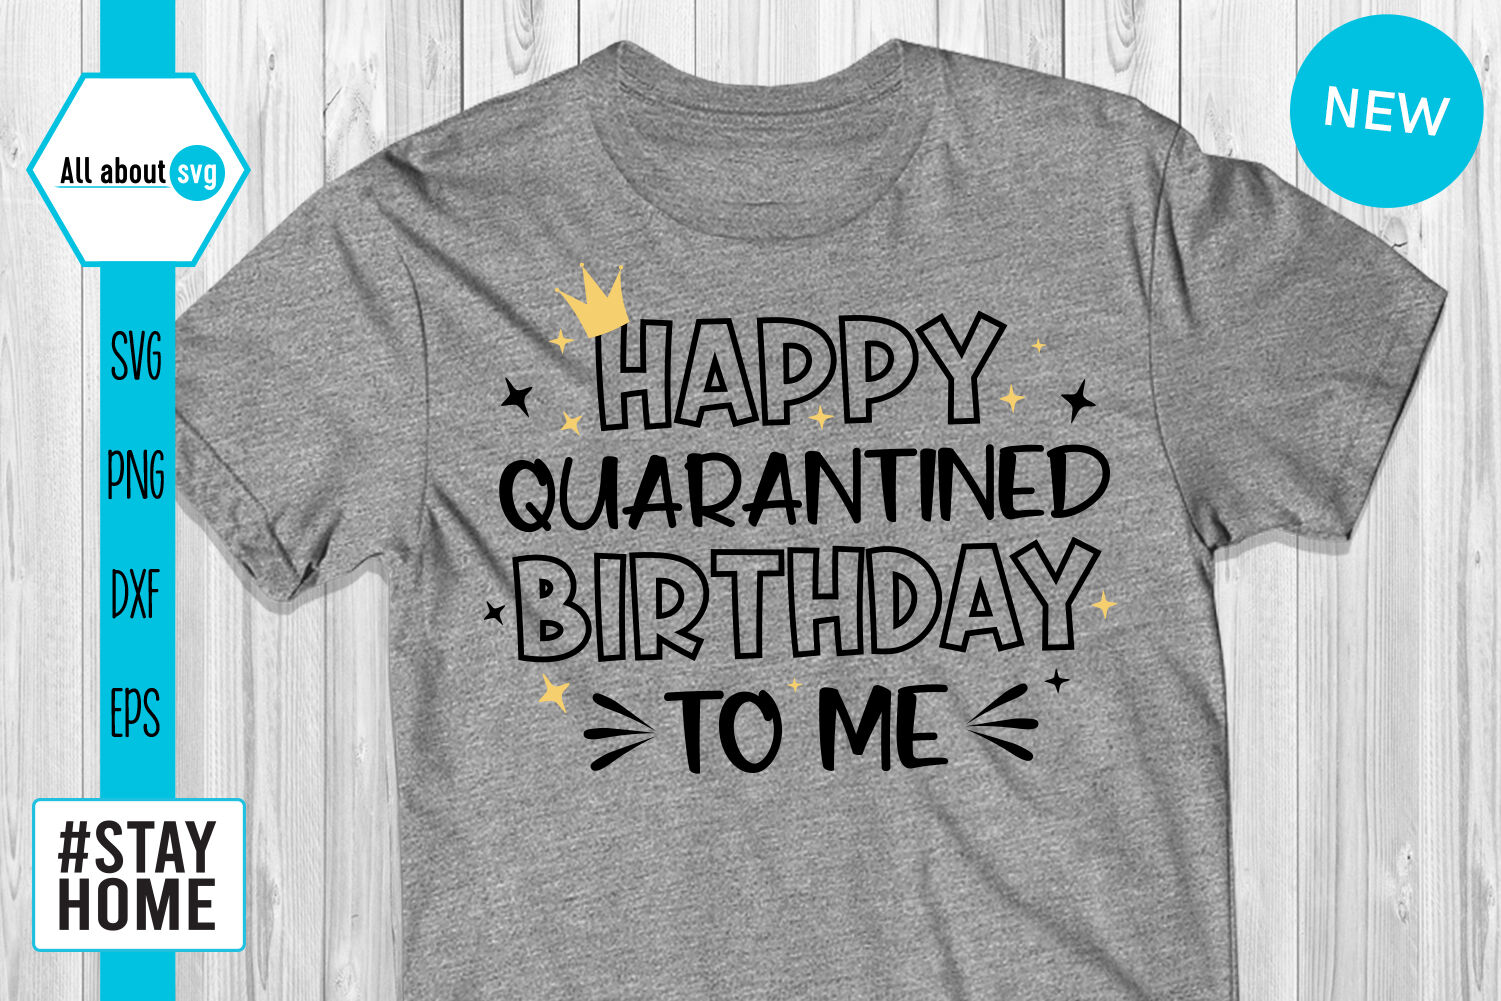 Happy Quarantined Birthday To Me Svg By All About Svg